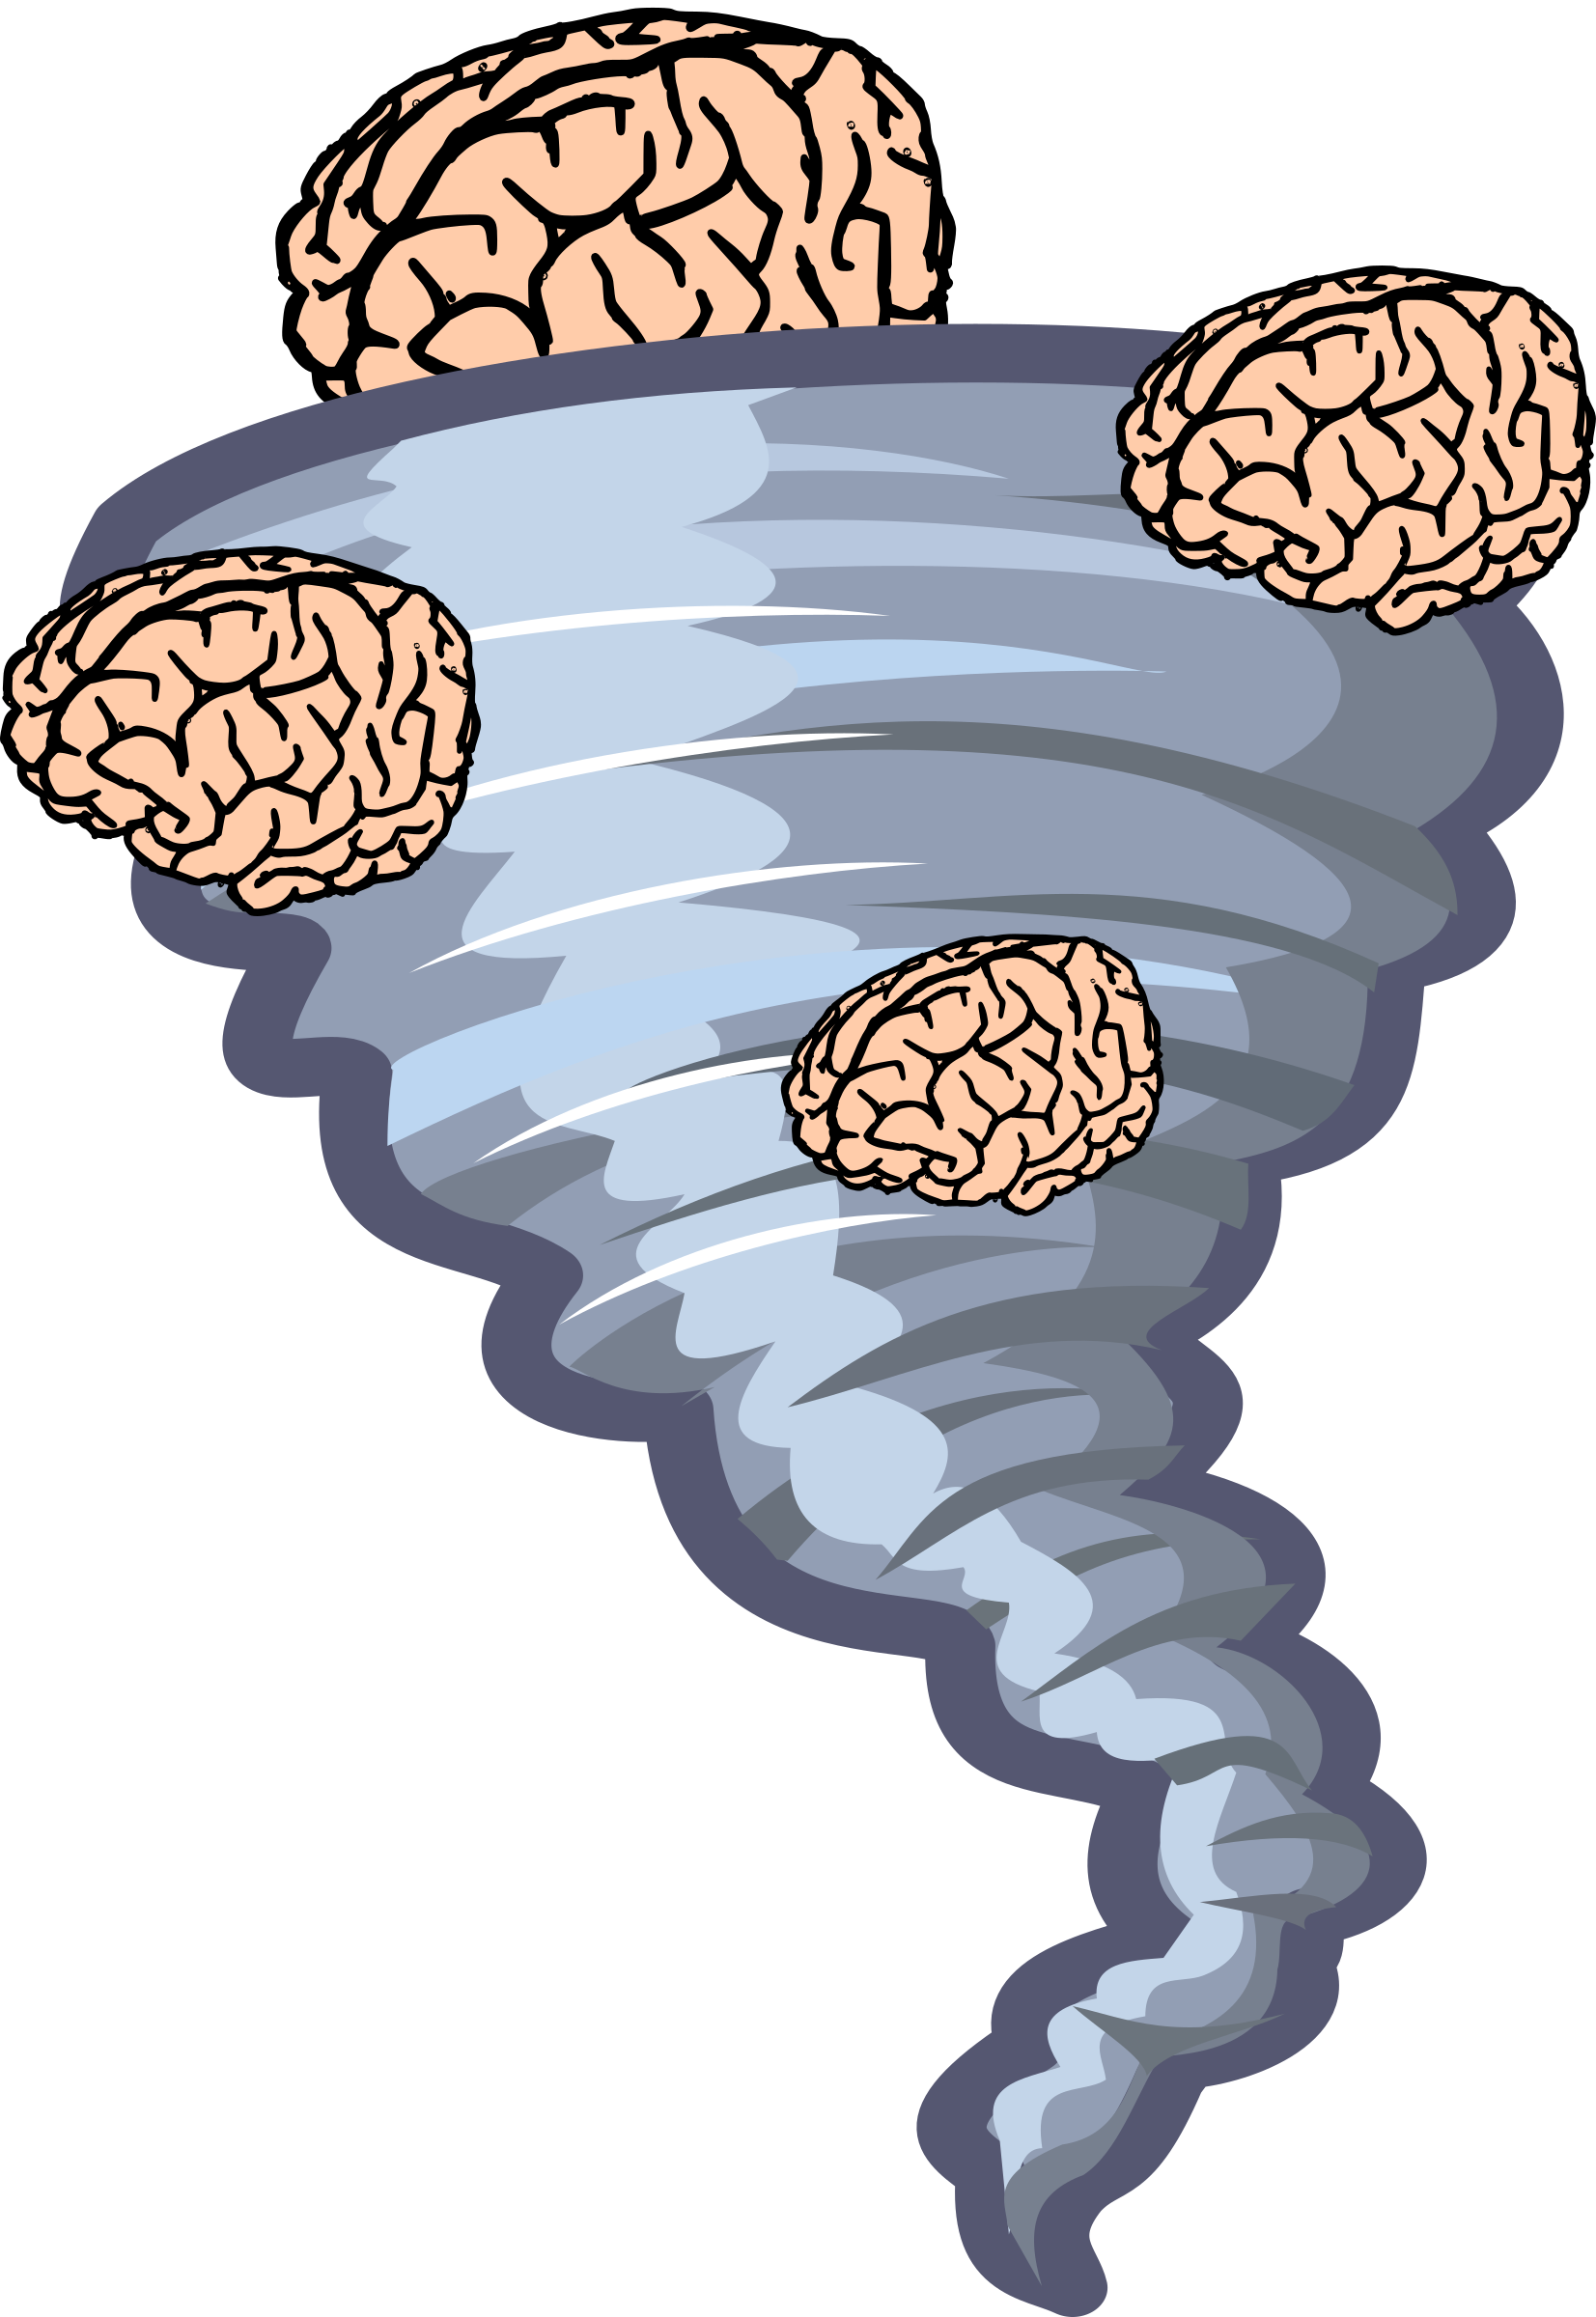 Brainstorm big image png. Thoughts clipart brain storm